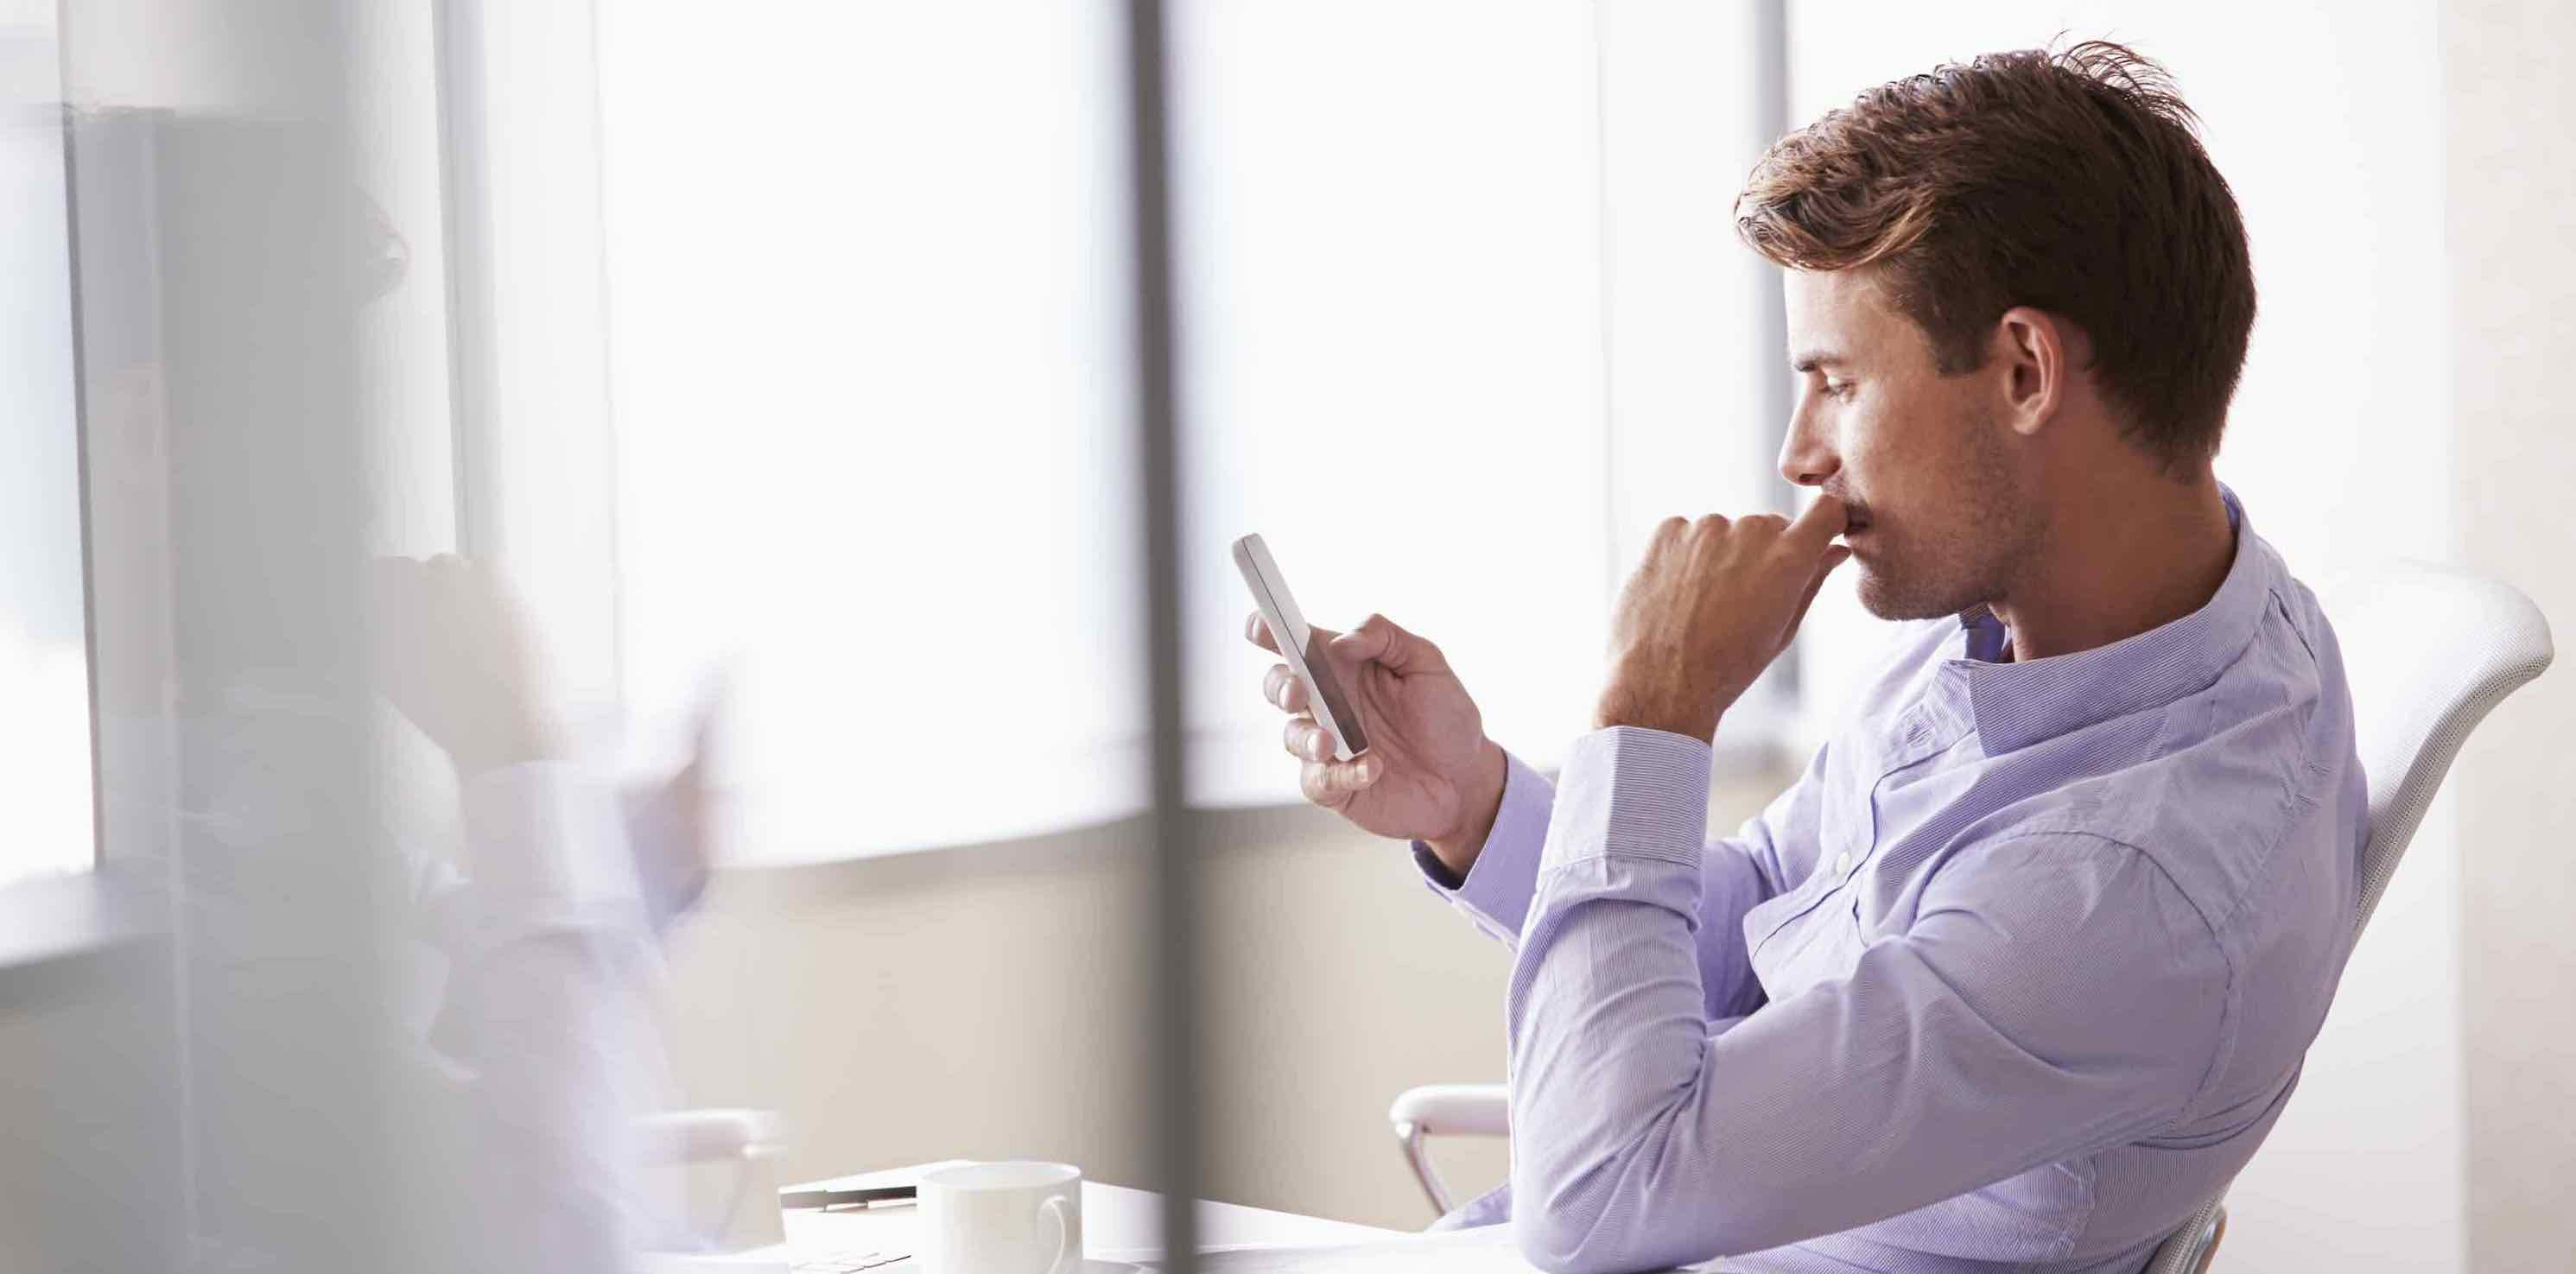 Casually Dressed Businessman Using Online Claims Management Software on His Mobile Phone In Office